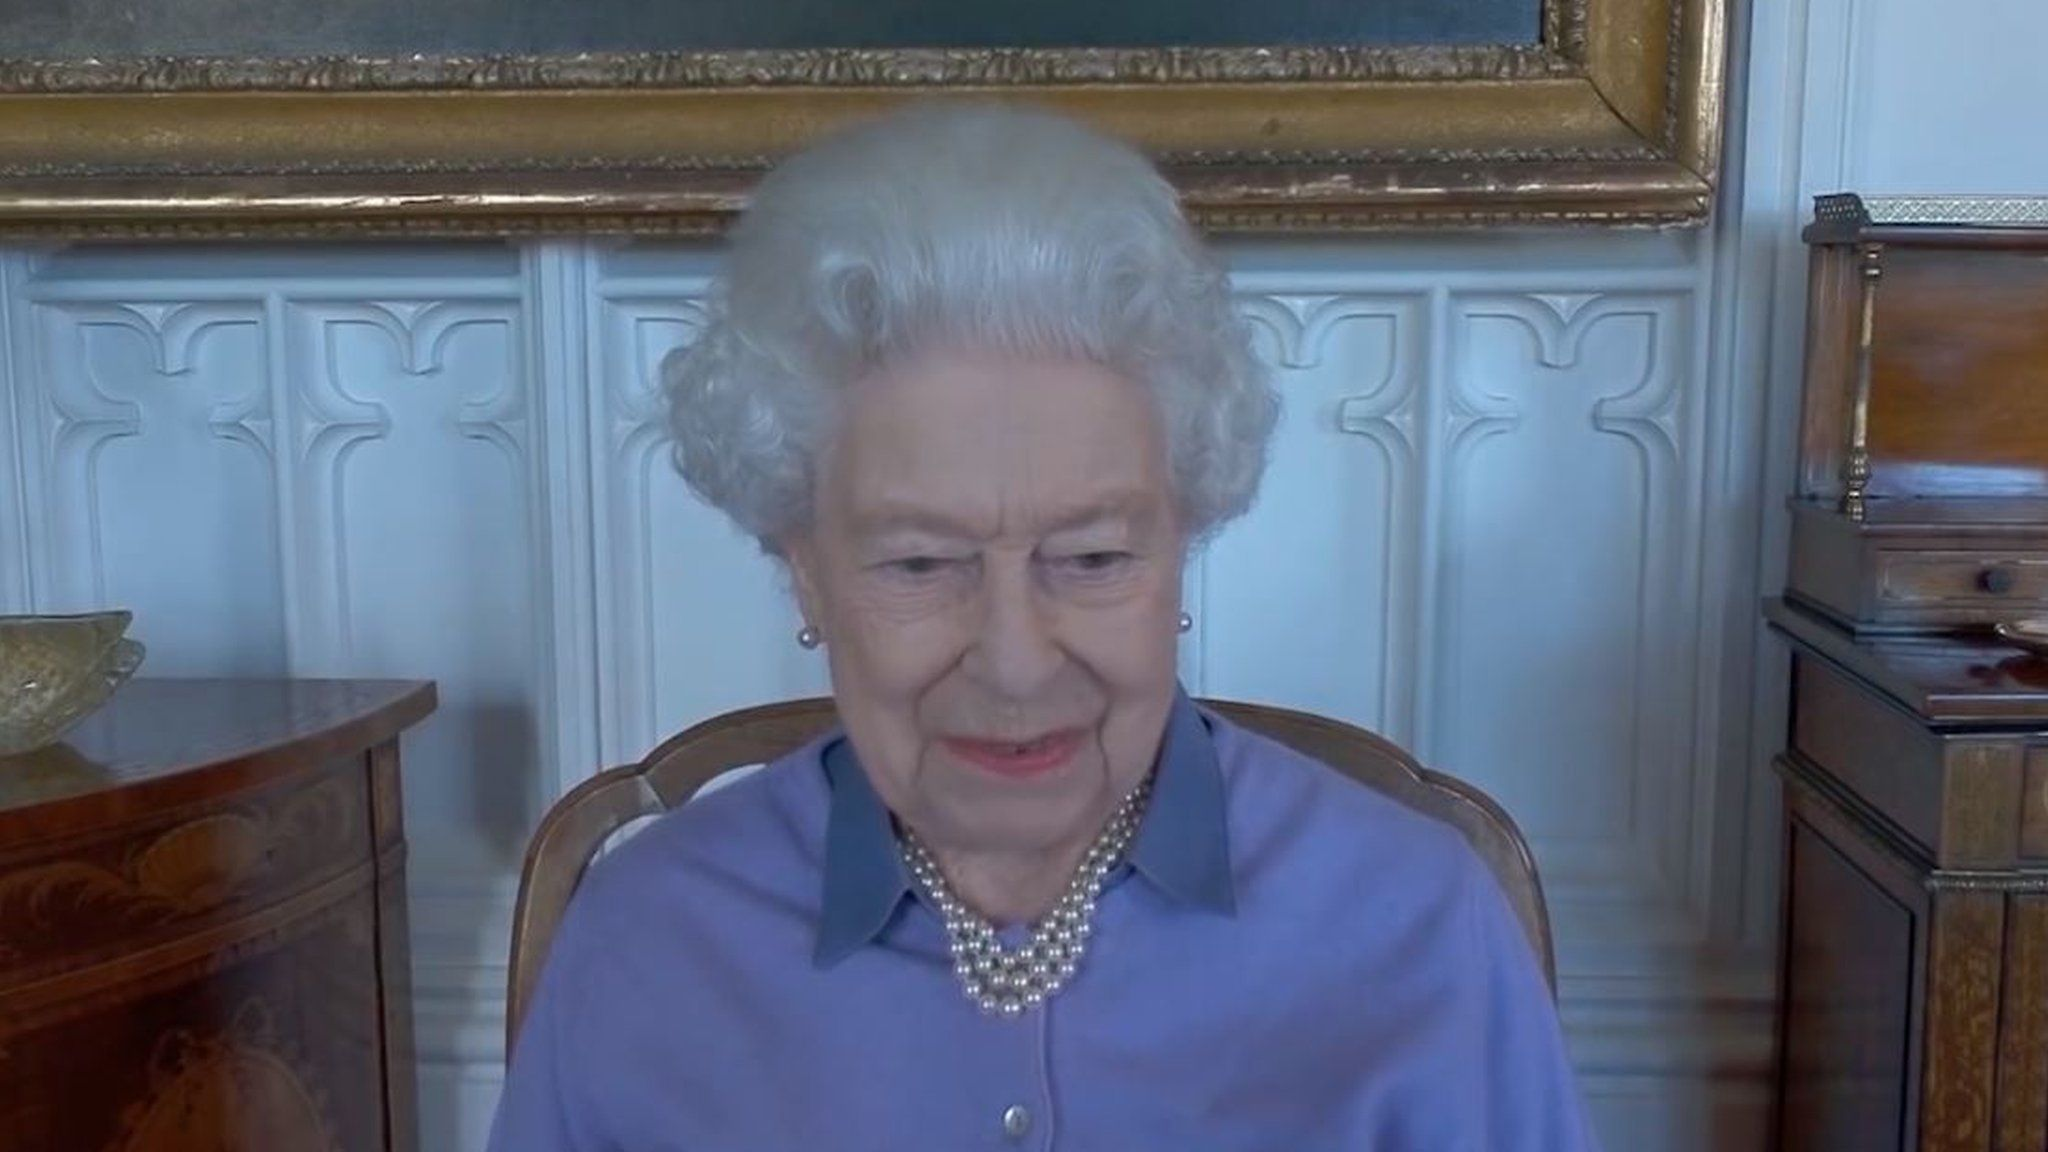 The Queen smiles during the virtual call last week